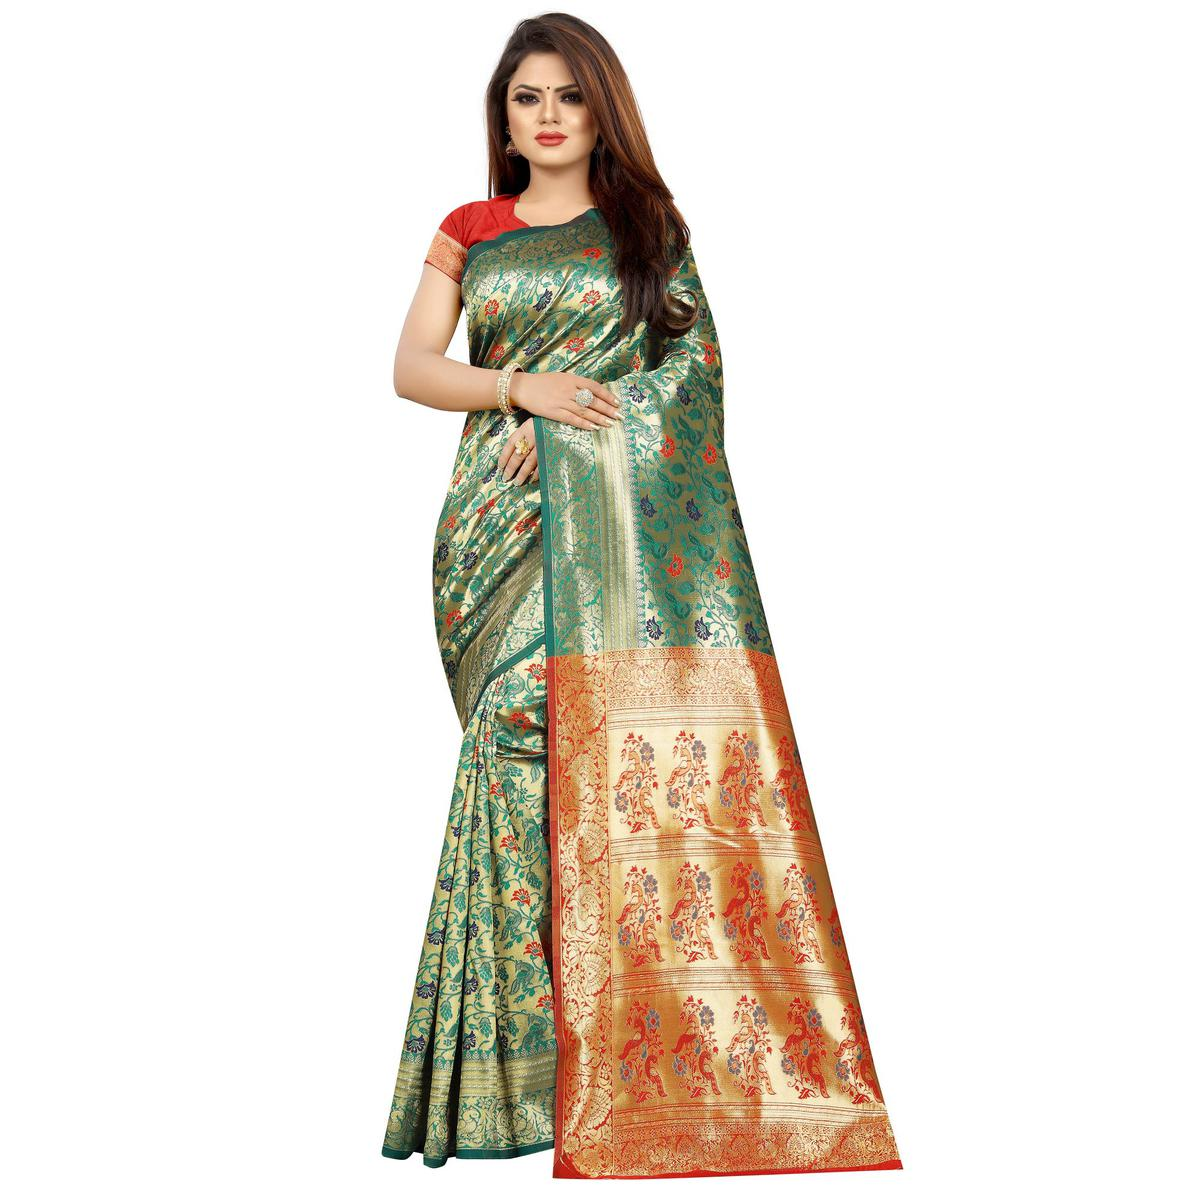 Stunning Turquoise Green Colored Festive Wear Woven Art Silk With Jacquard Border Saree